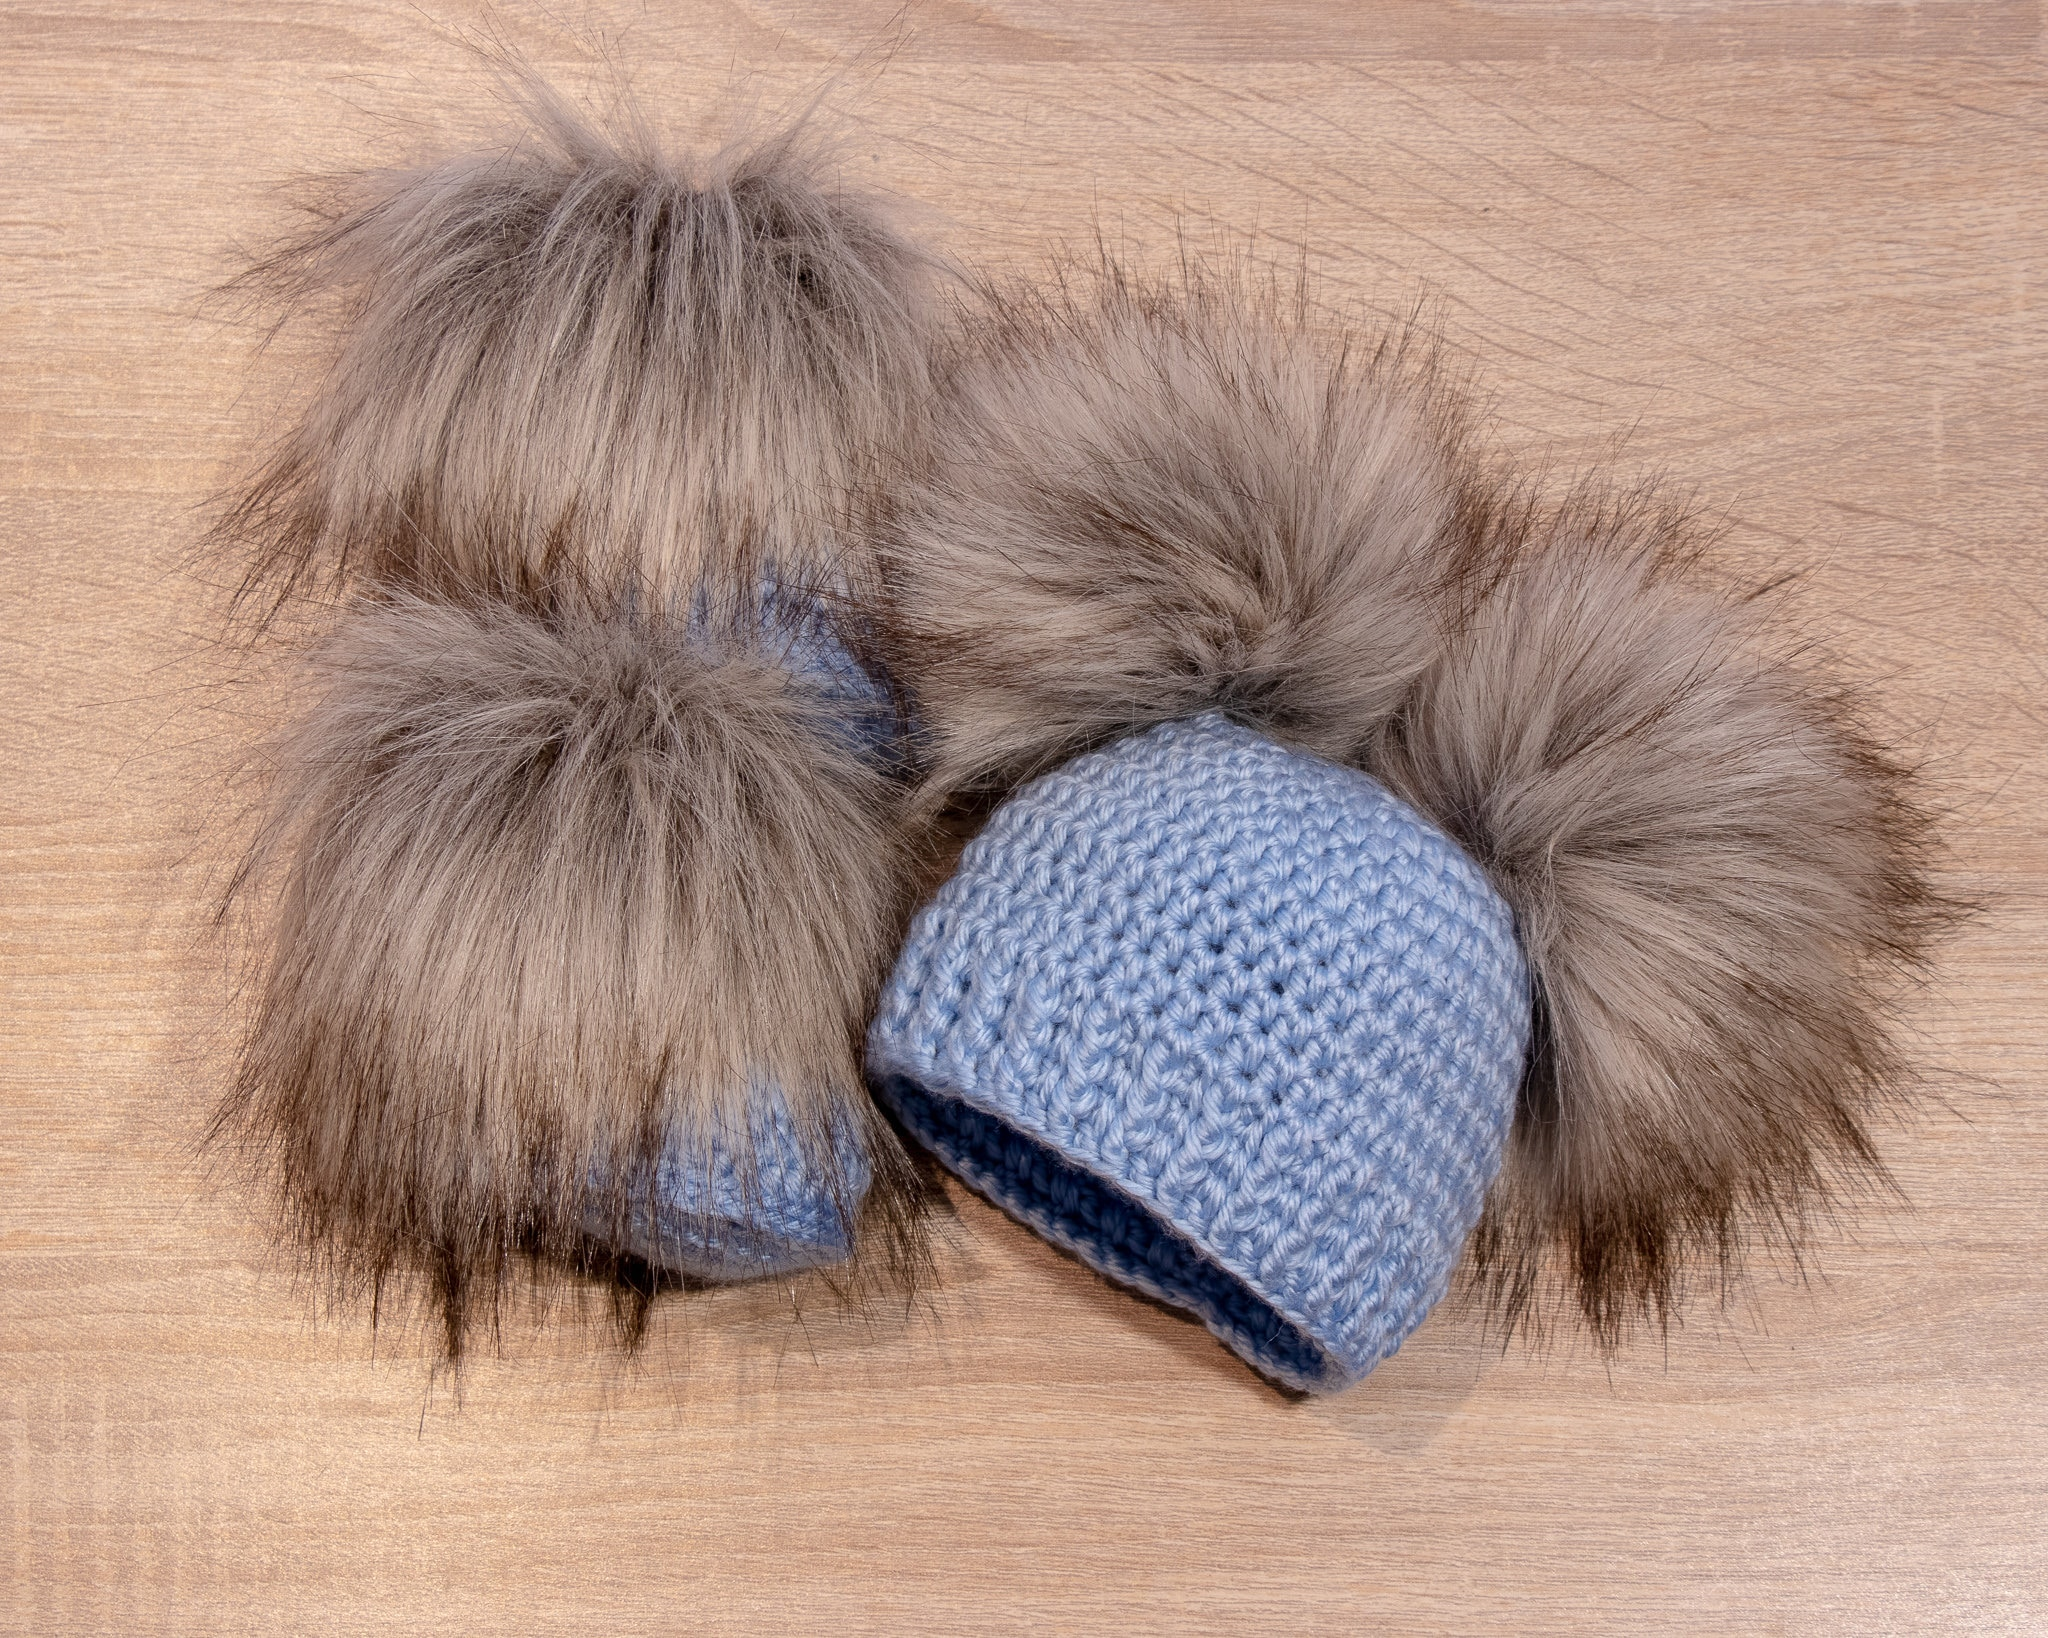 41b21e9d109 Baby Boy Booties and hat set - Fur double pom hat and booties - Baby ...